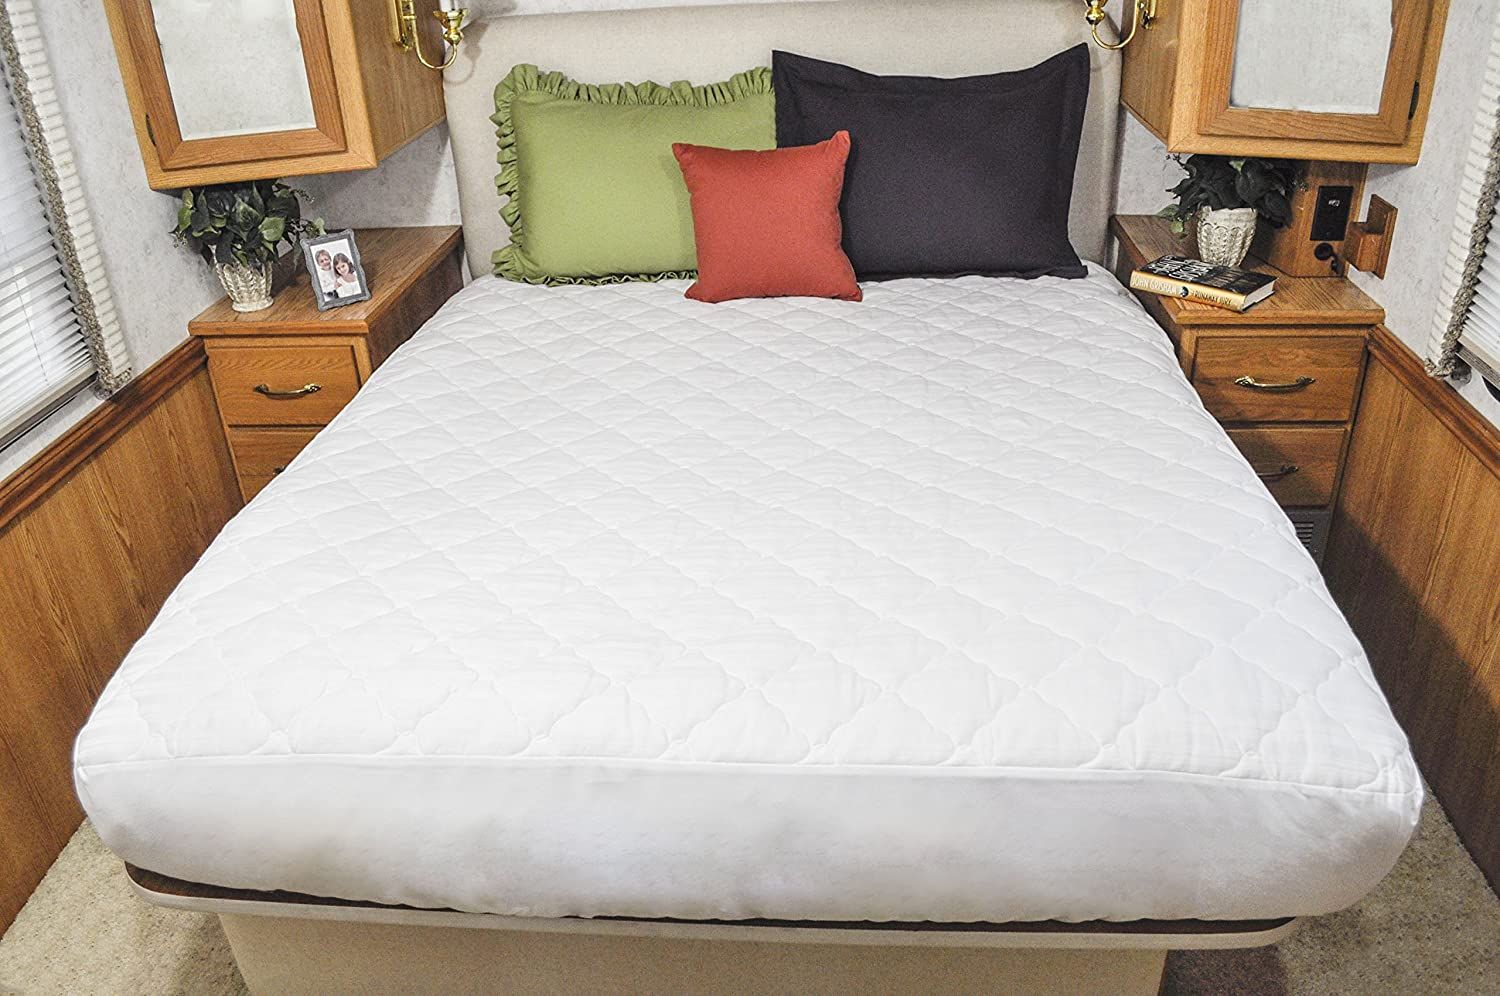 100 king size bed mattress pad california king size waterbe